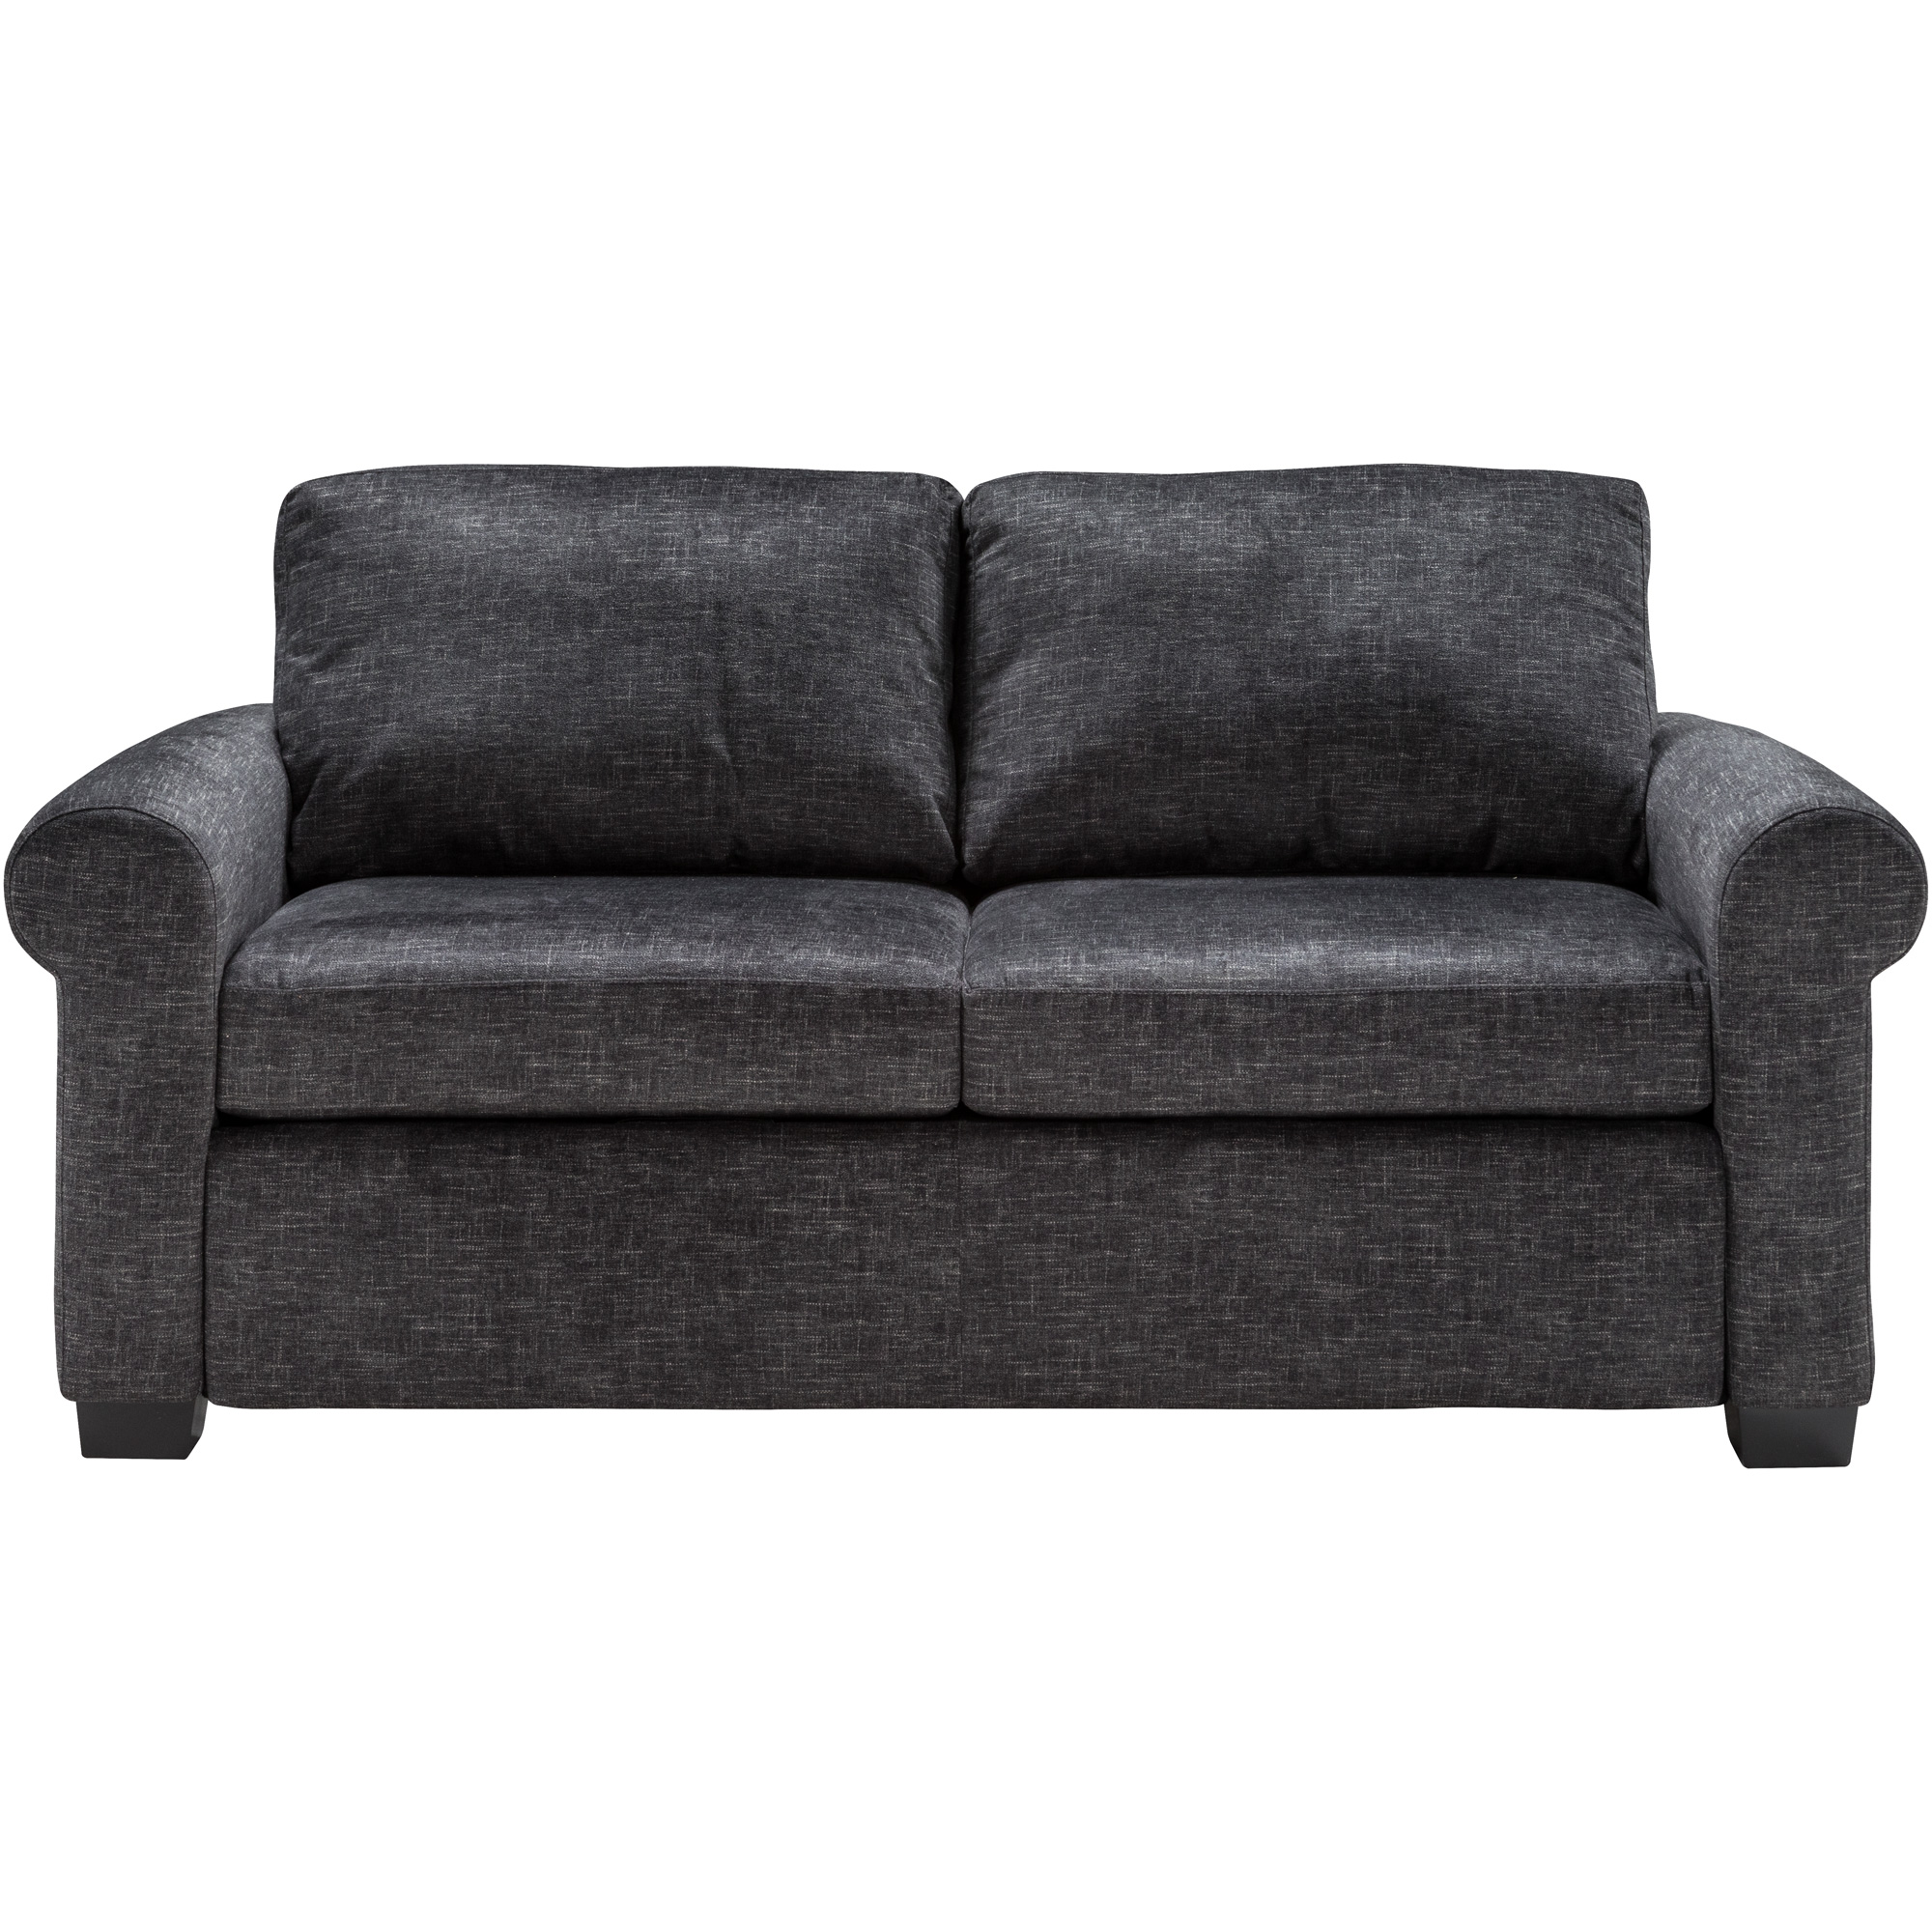 American Leather | Cortland Alton Charcoal Full Sleeper Sofa